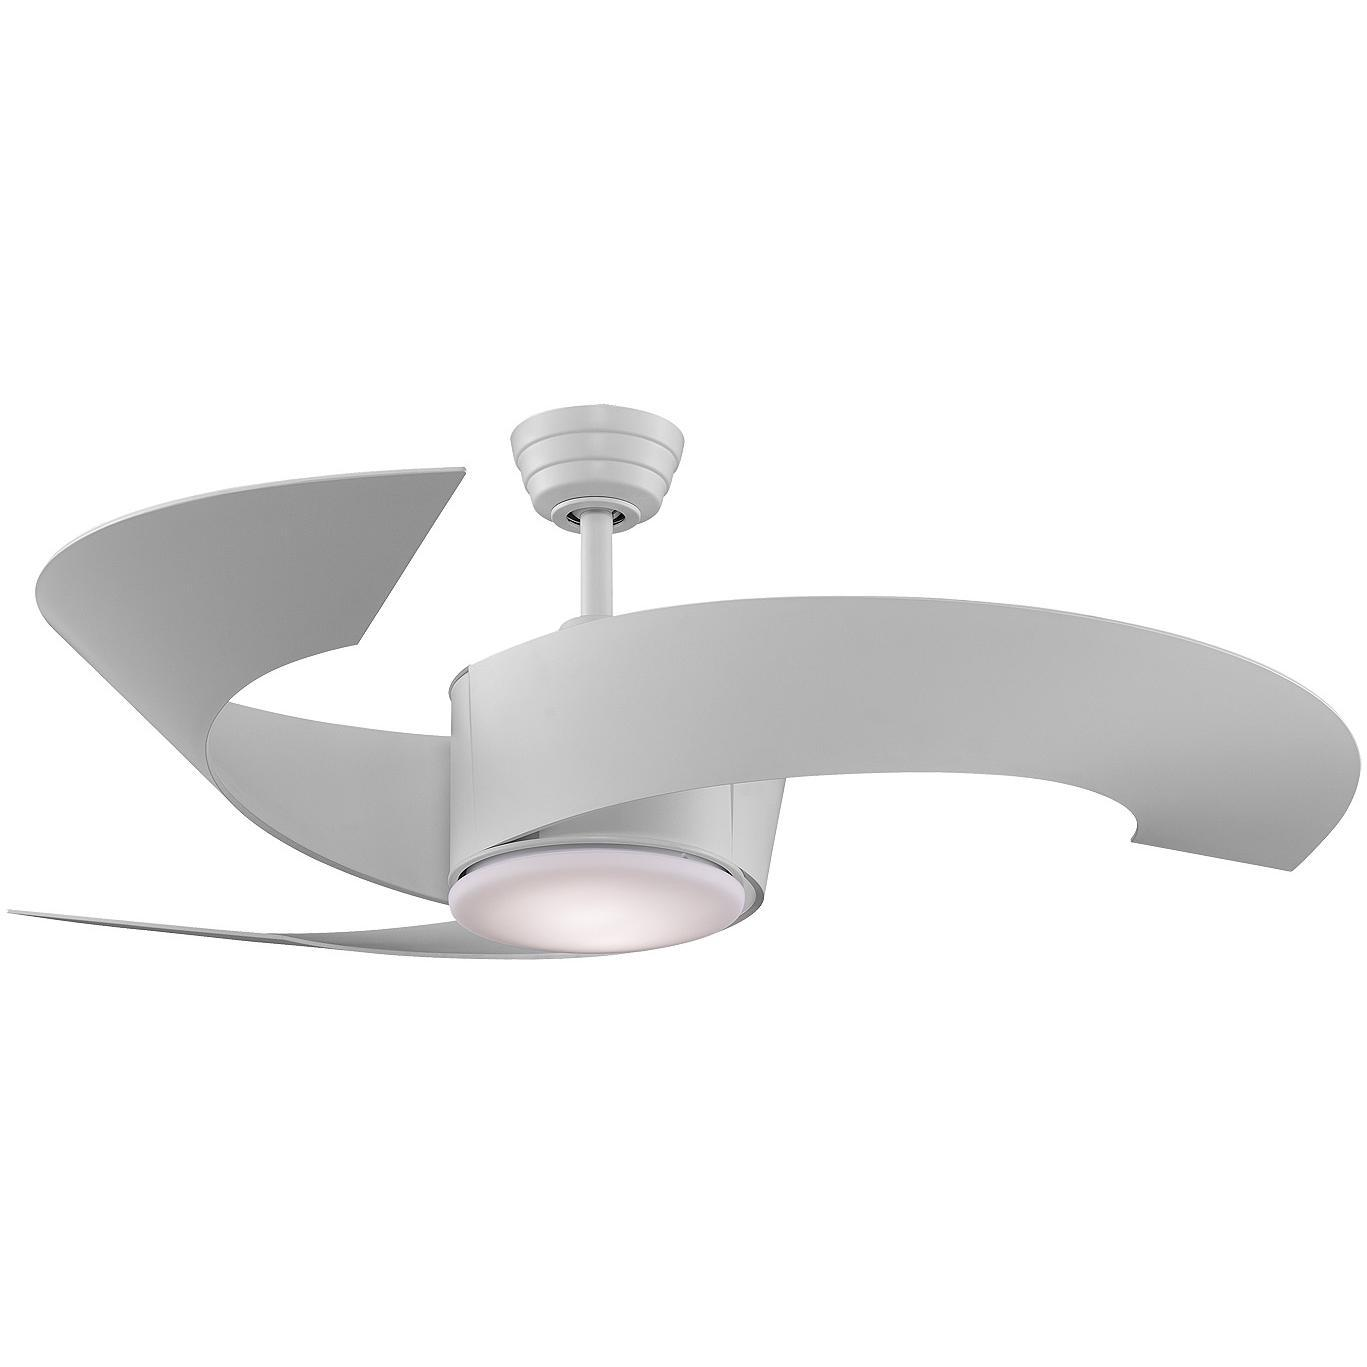 torto ceiling fan photo - 3